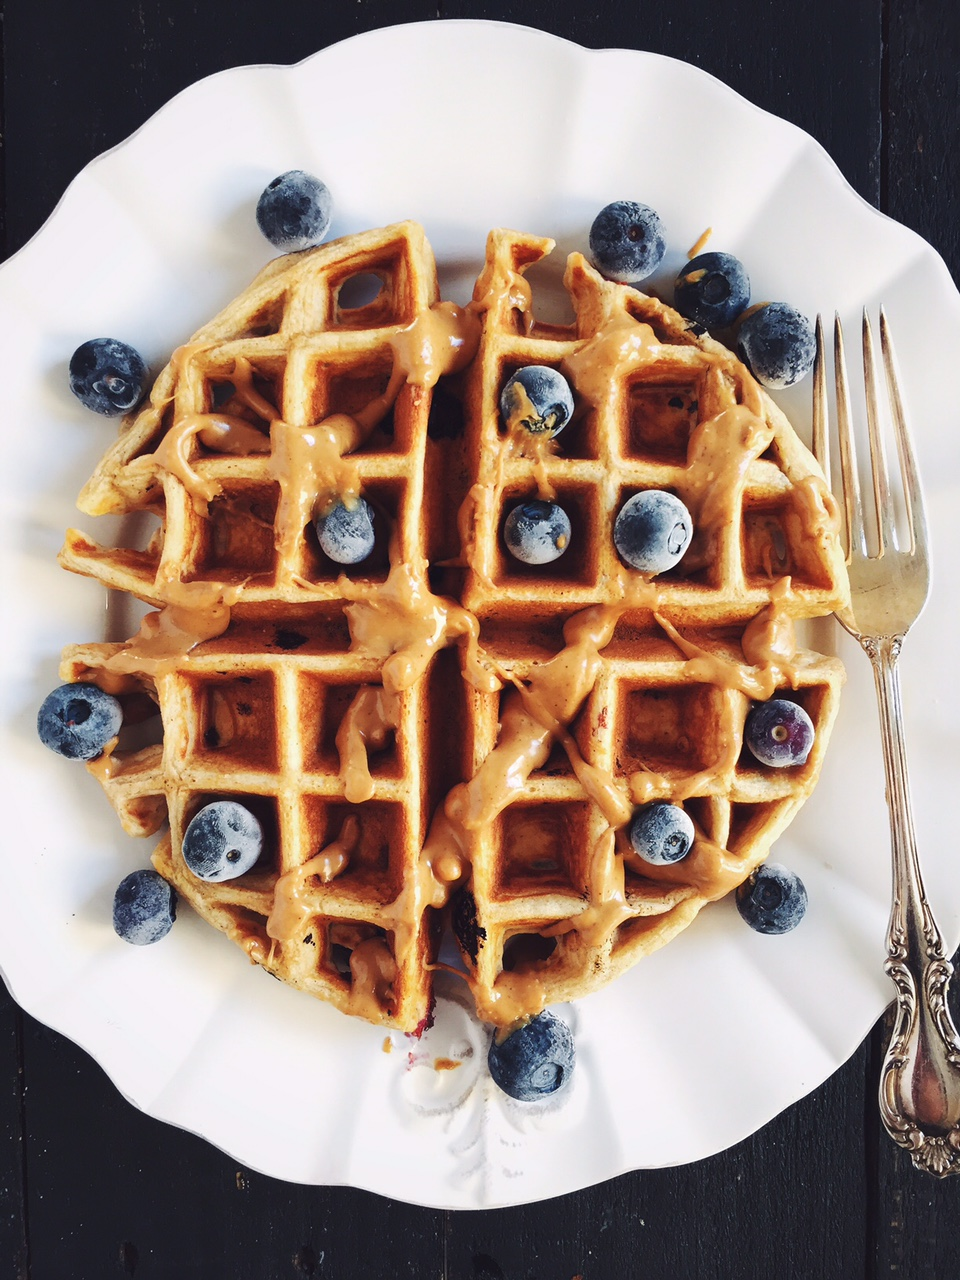 a waffle topped with peanut butter and blueberries